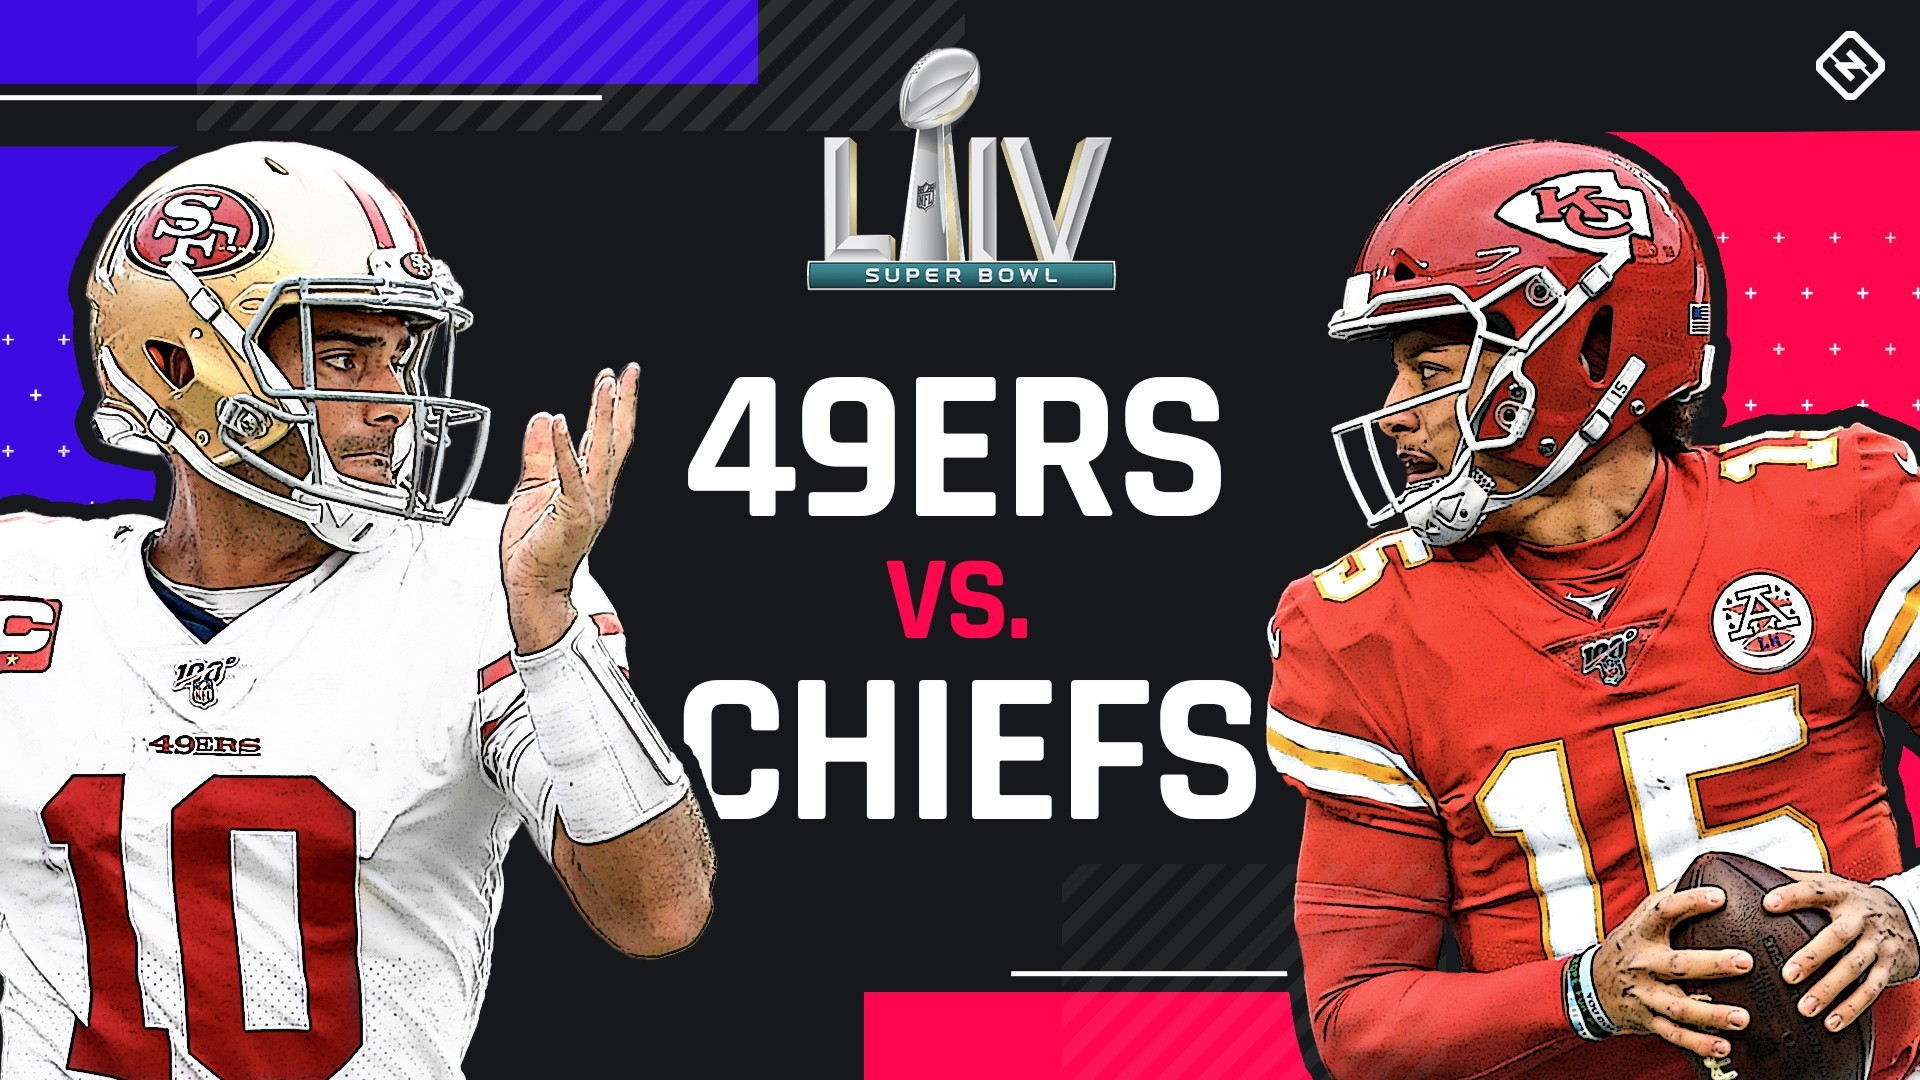 Who do you think will win on Sunday?